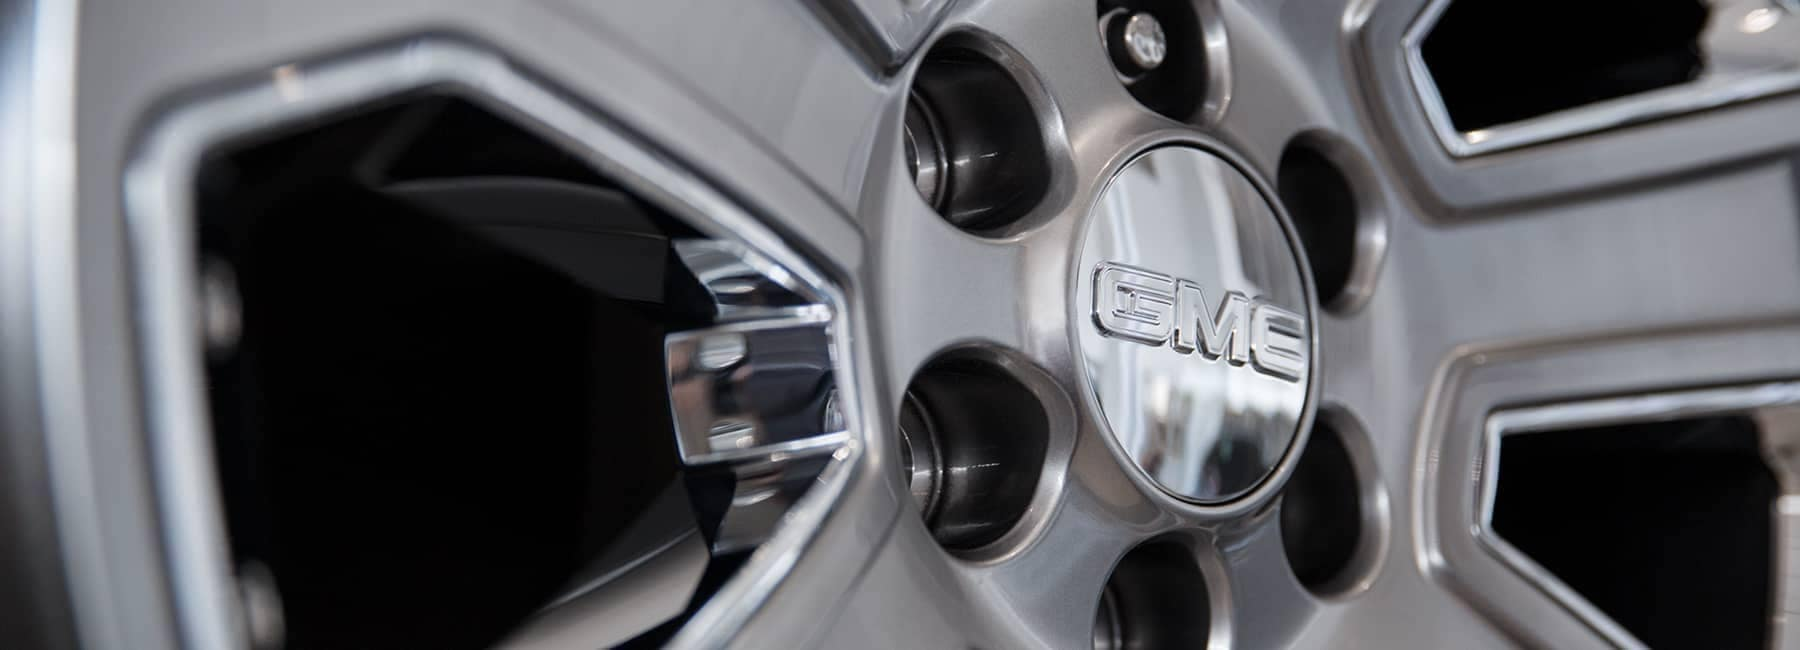 closeup of GMC Rim